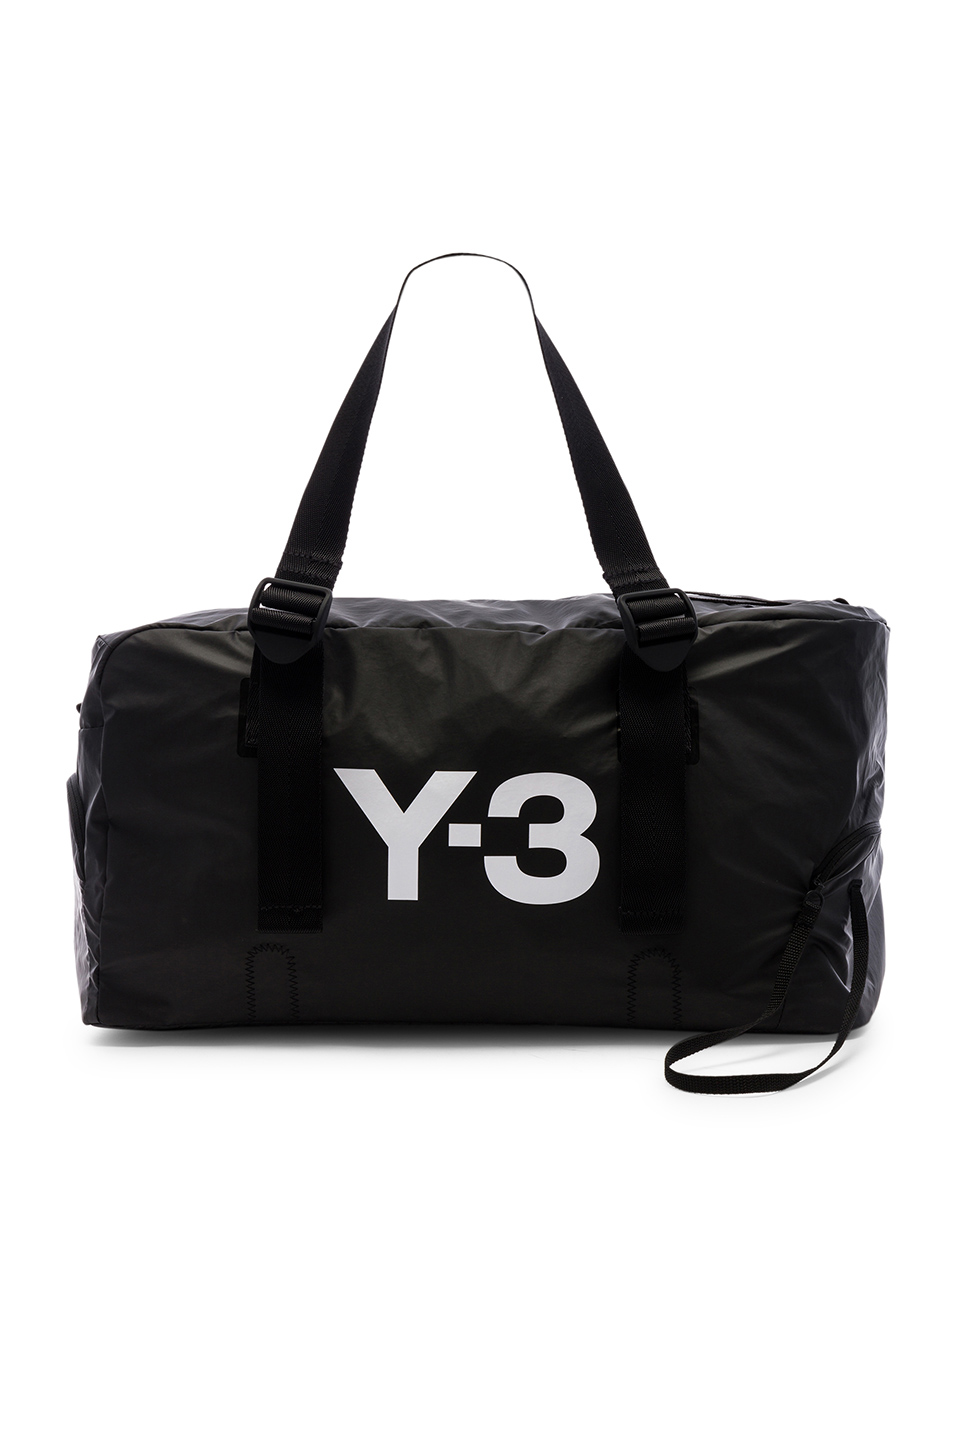 7cb4156eba95 Buy Original Y-3 Yohji Yamamoto Bungee Gym Bag at Indonesia